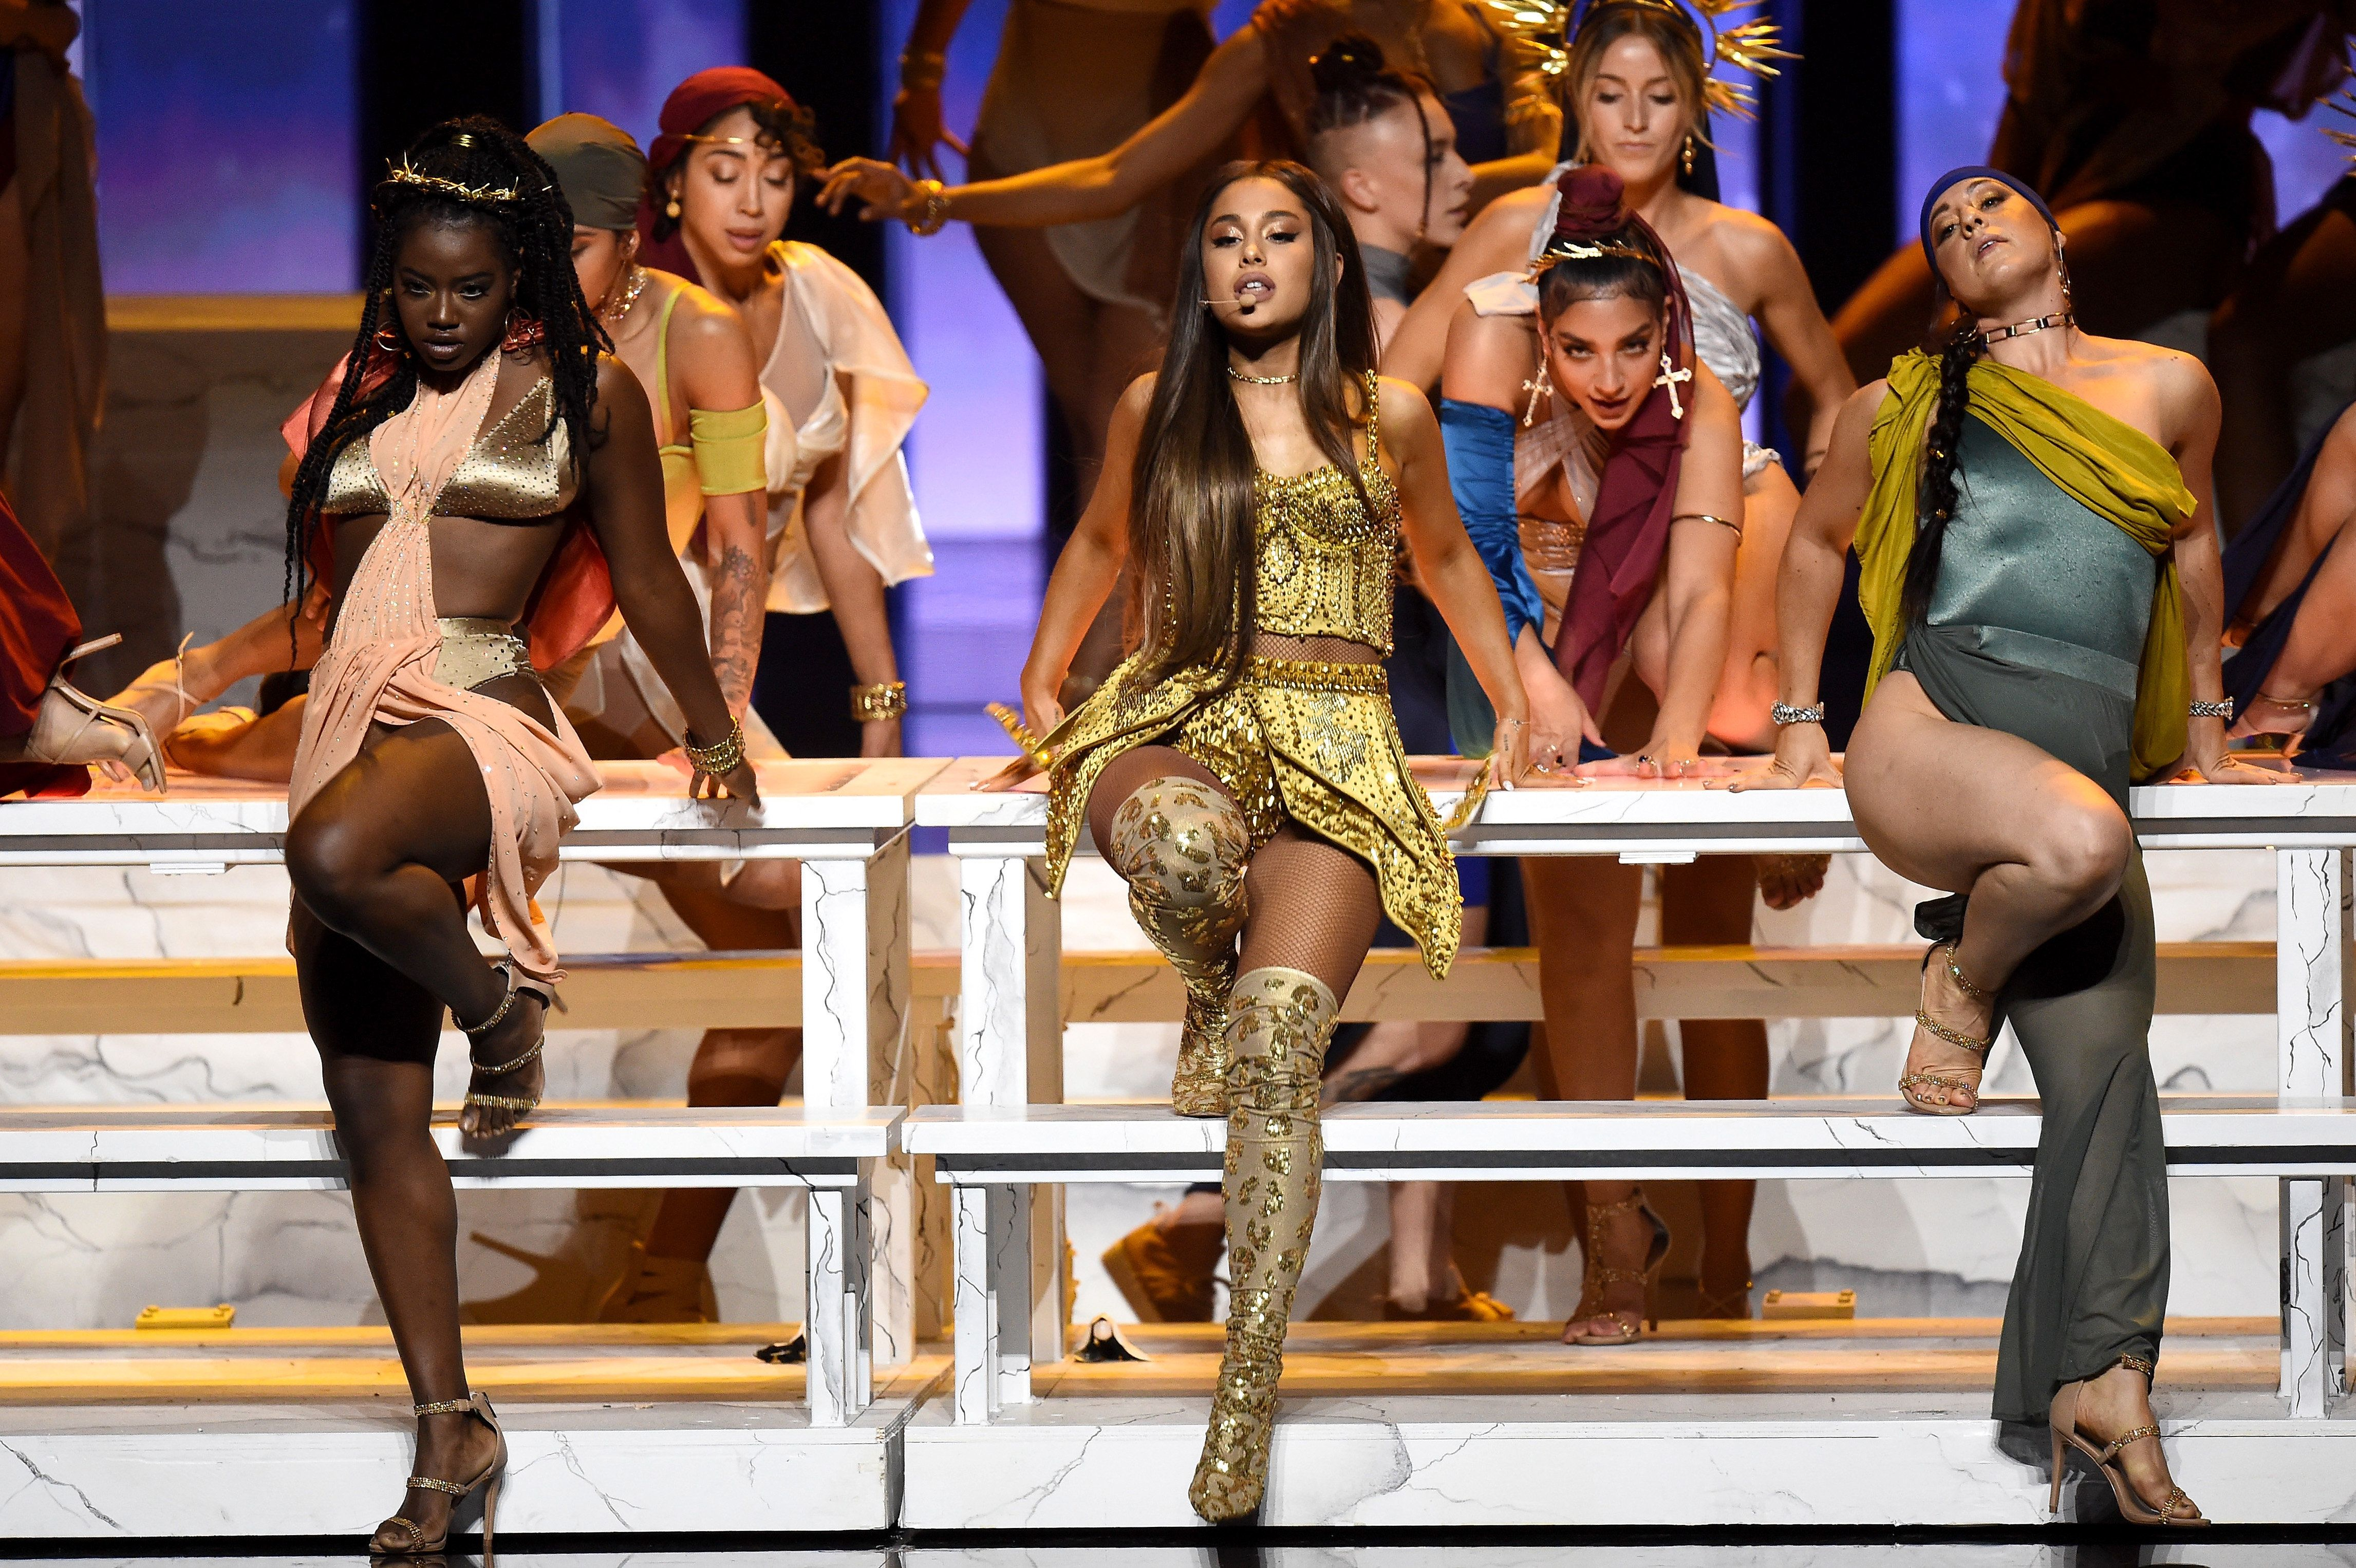 NEW YORK, NY - AUGUST 20:  Ariana Grande (center) performs onstage during the 2018 MTV Video Music Awards at Radio City Music Hall on August 20, 2018 in New York City.  (Photo by Michael Loccisano/Getty Images for MTV)